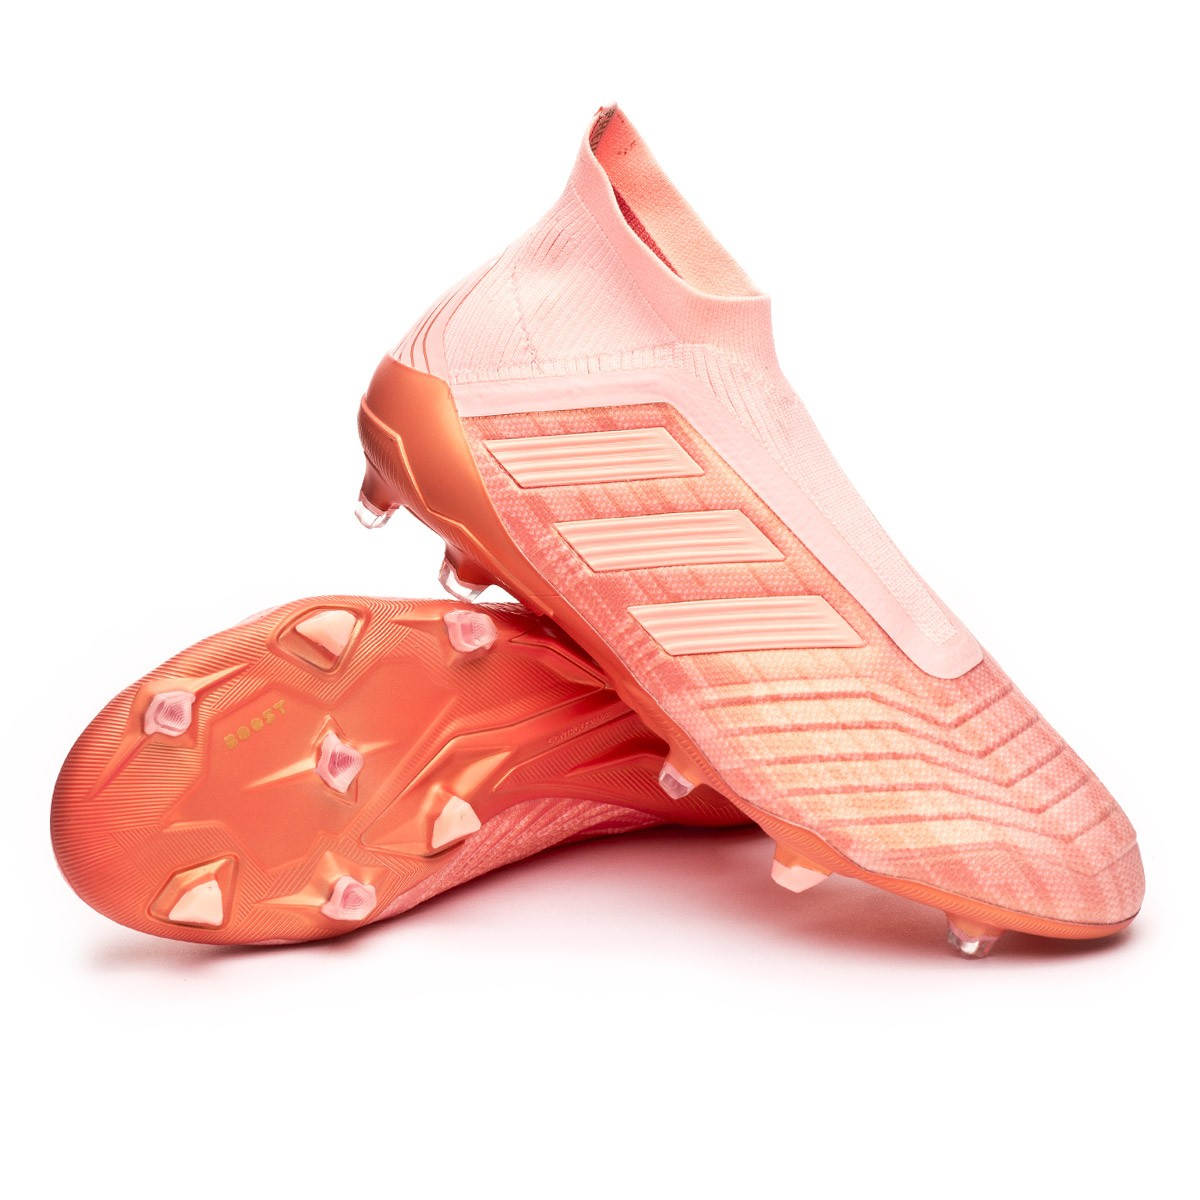 Bota Predator 18+ FG Clear orange-Trace pink